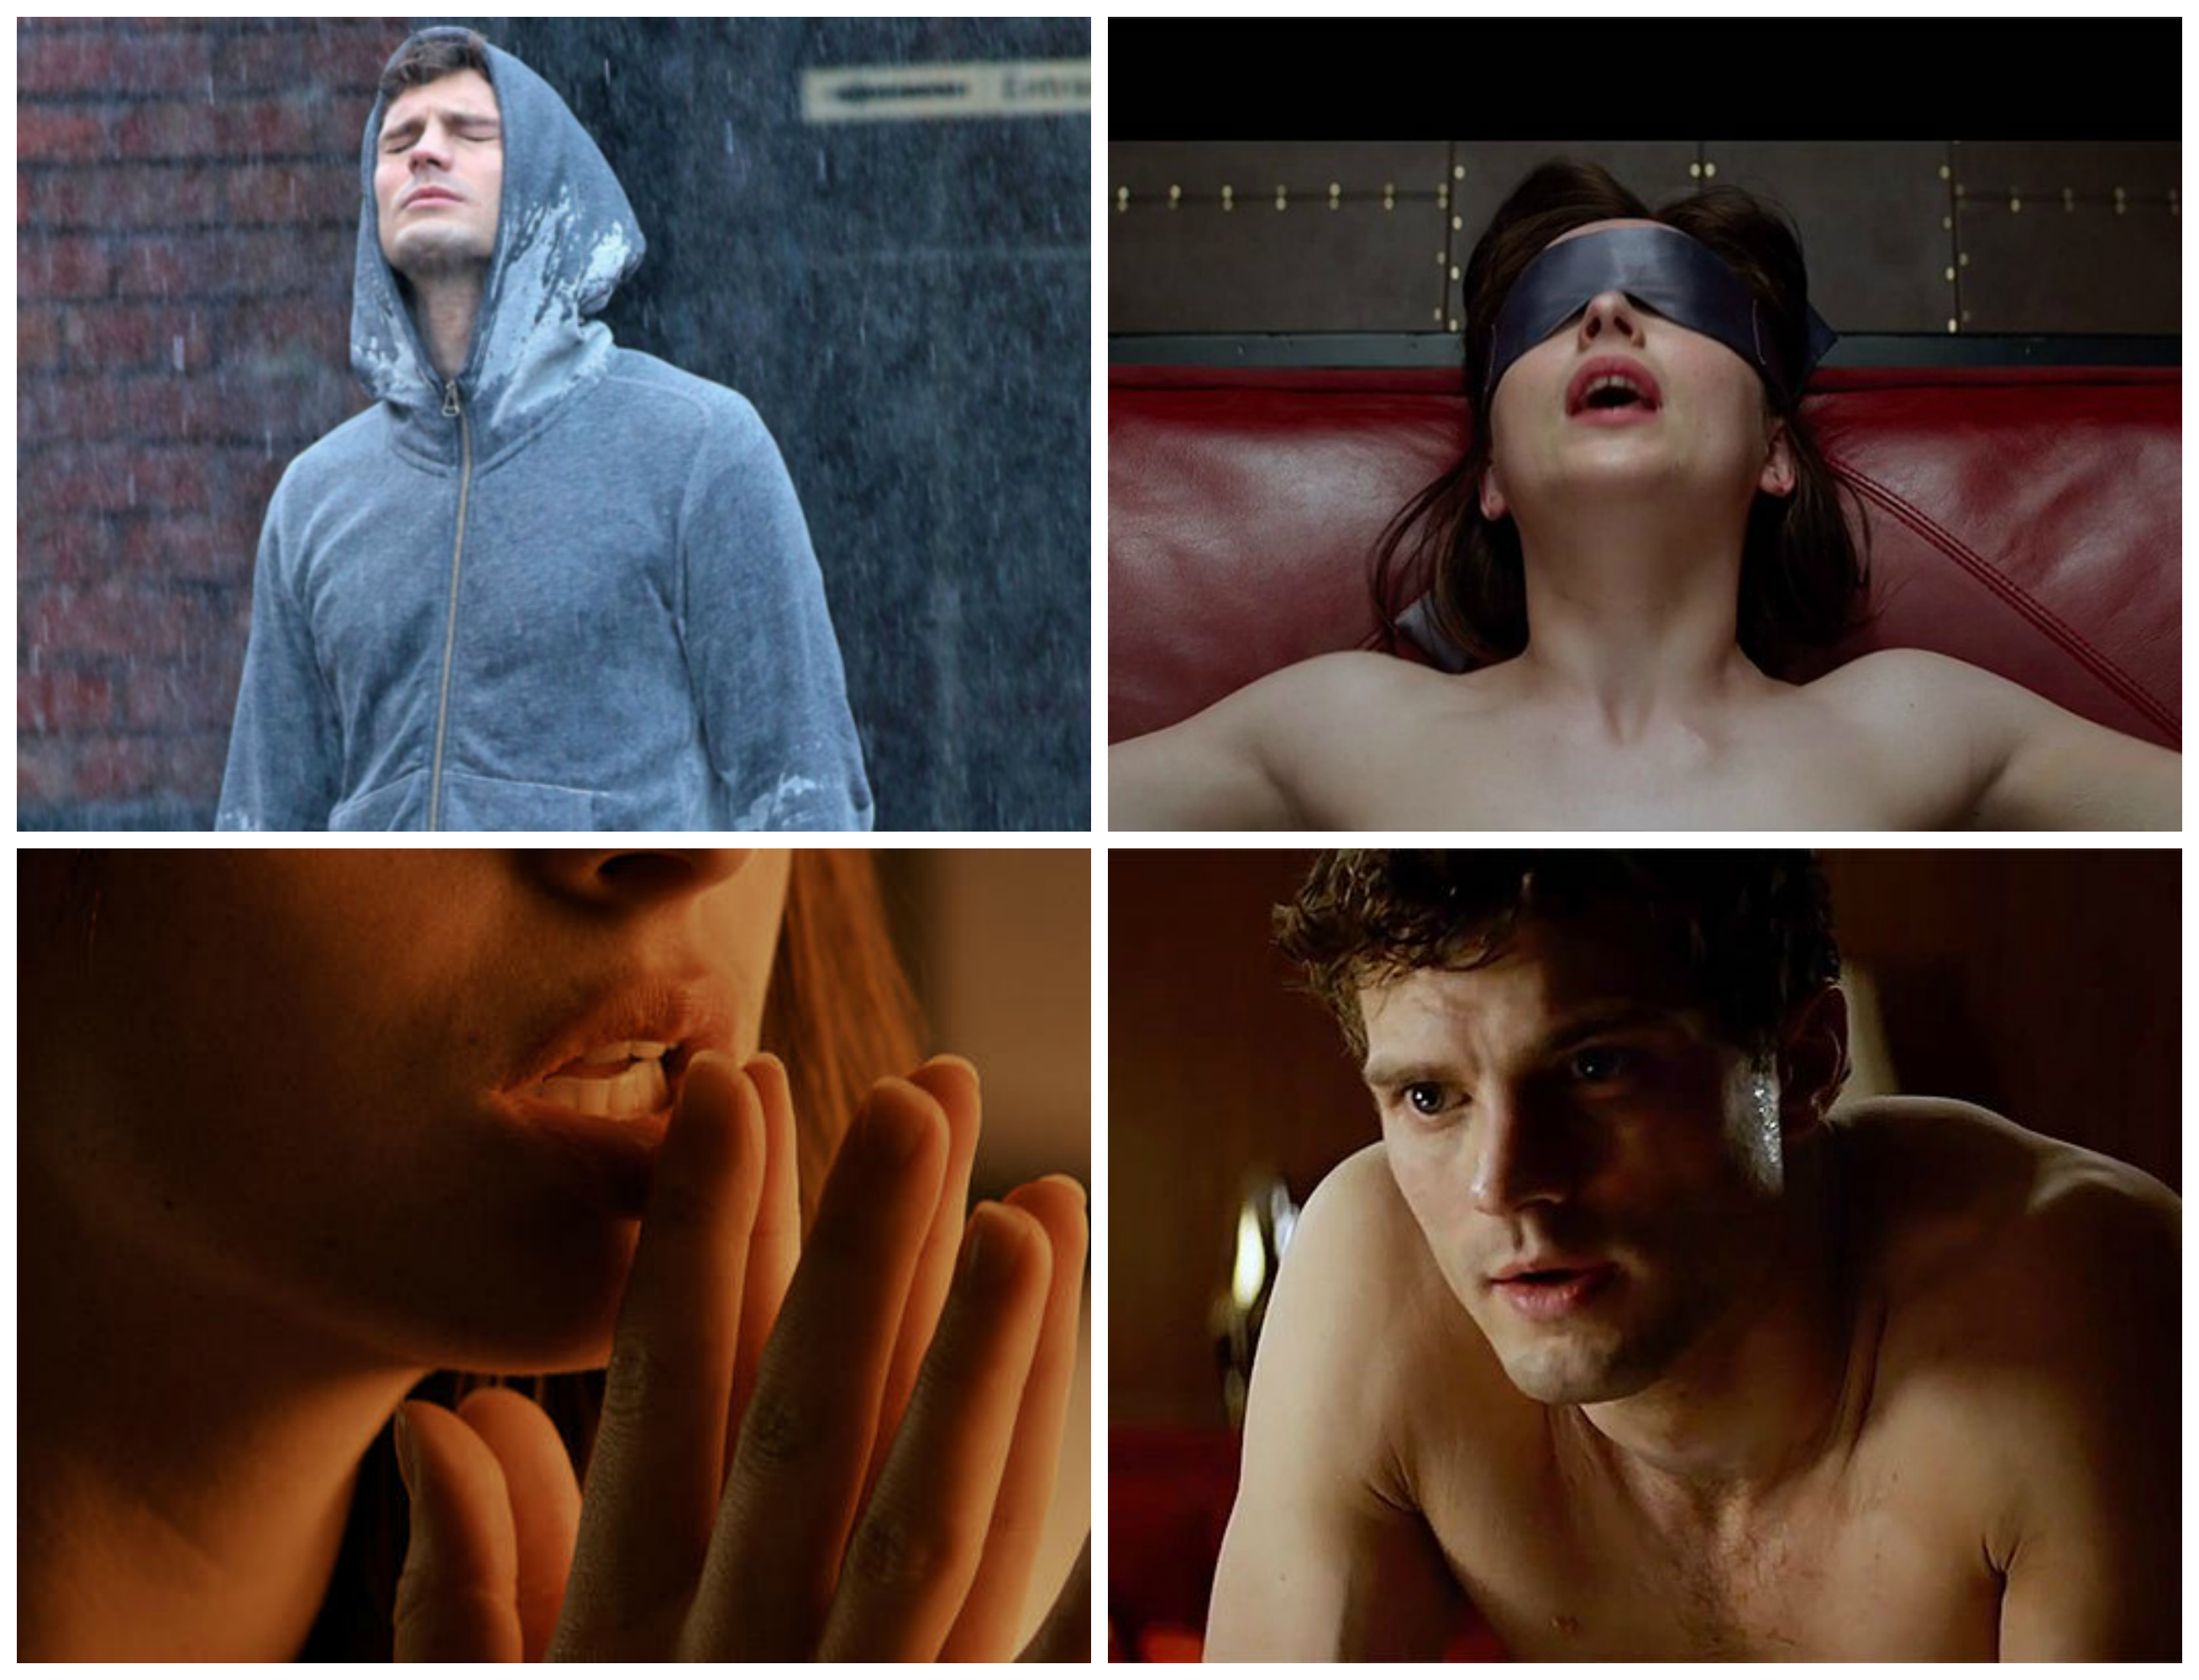 Episode 184: 'Fifty Shades of Grey' Movie Review